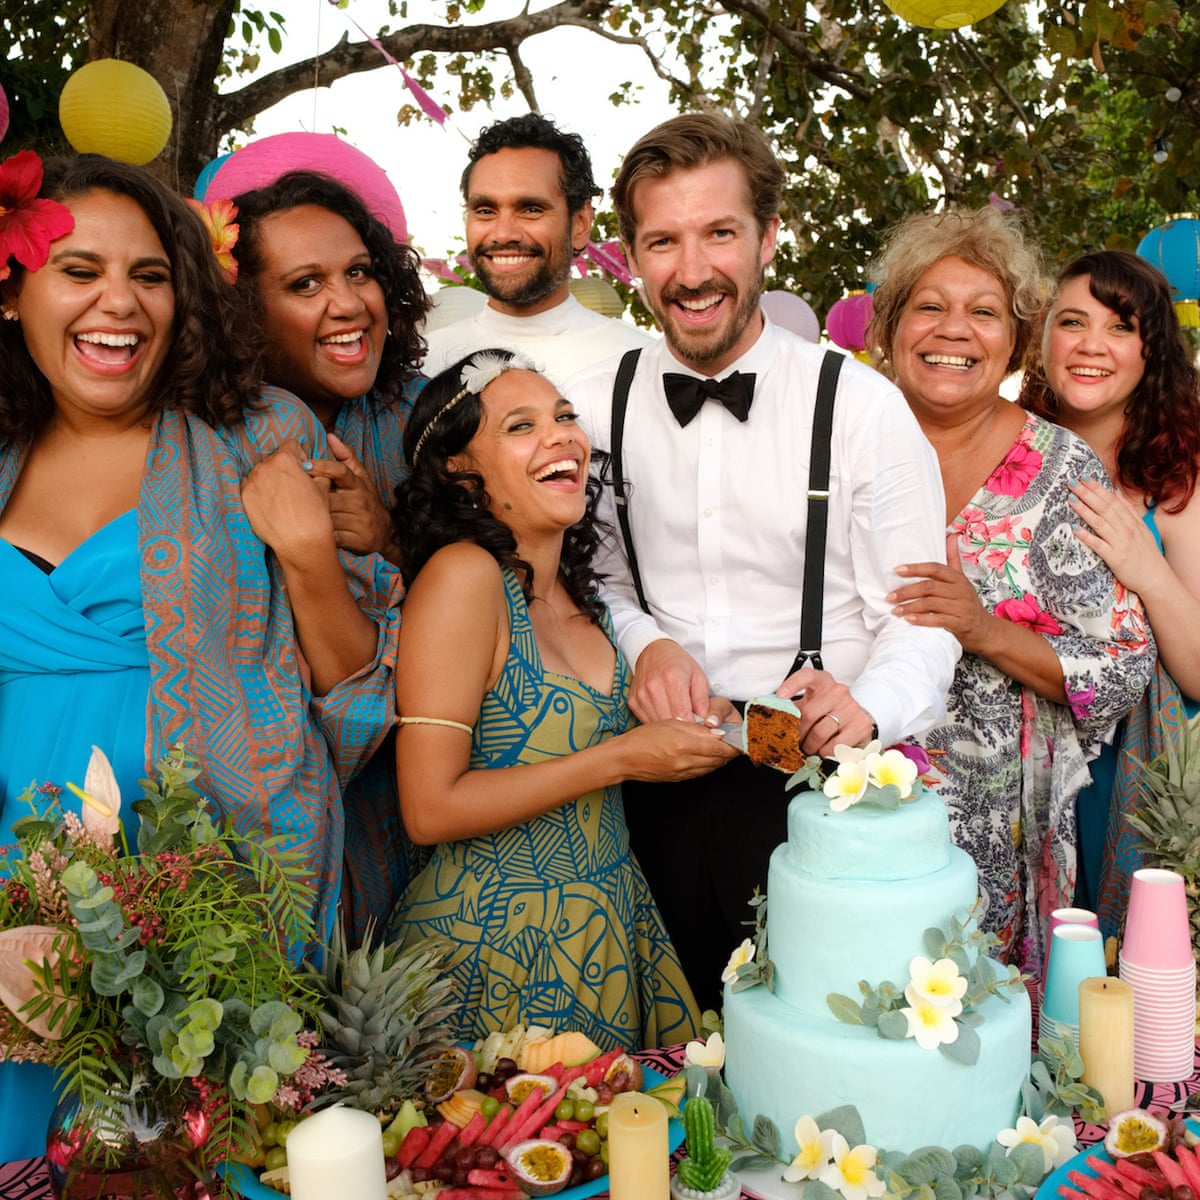 More than a romcom, Top End Wedding shows the yearning for